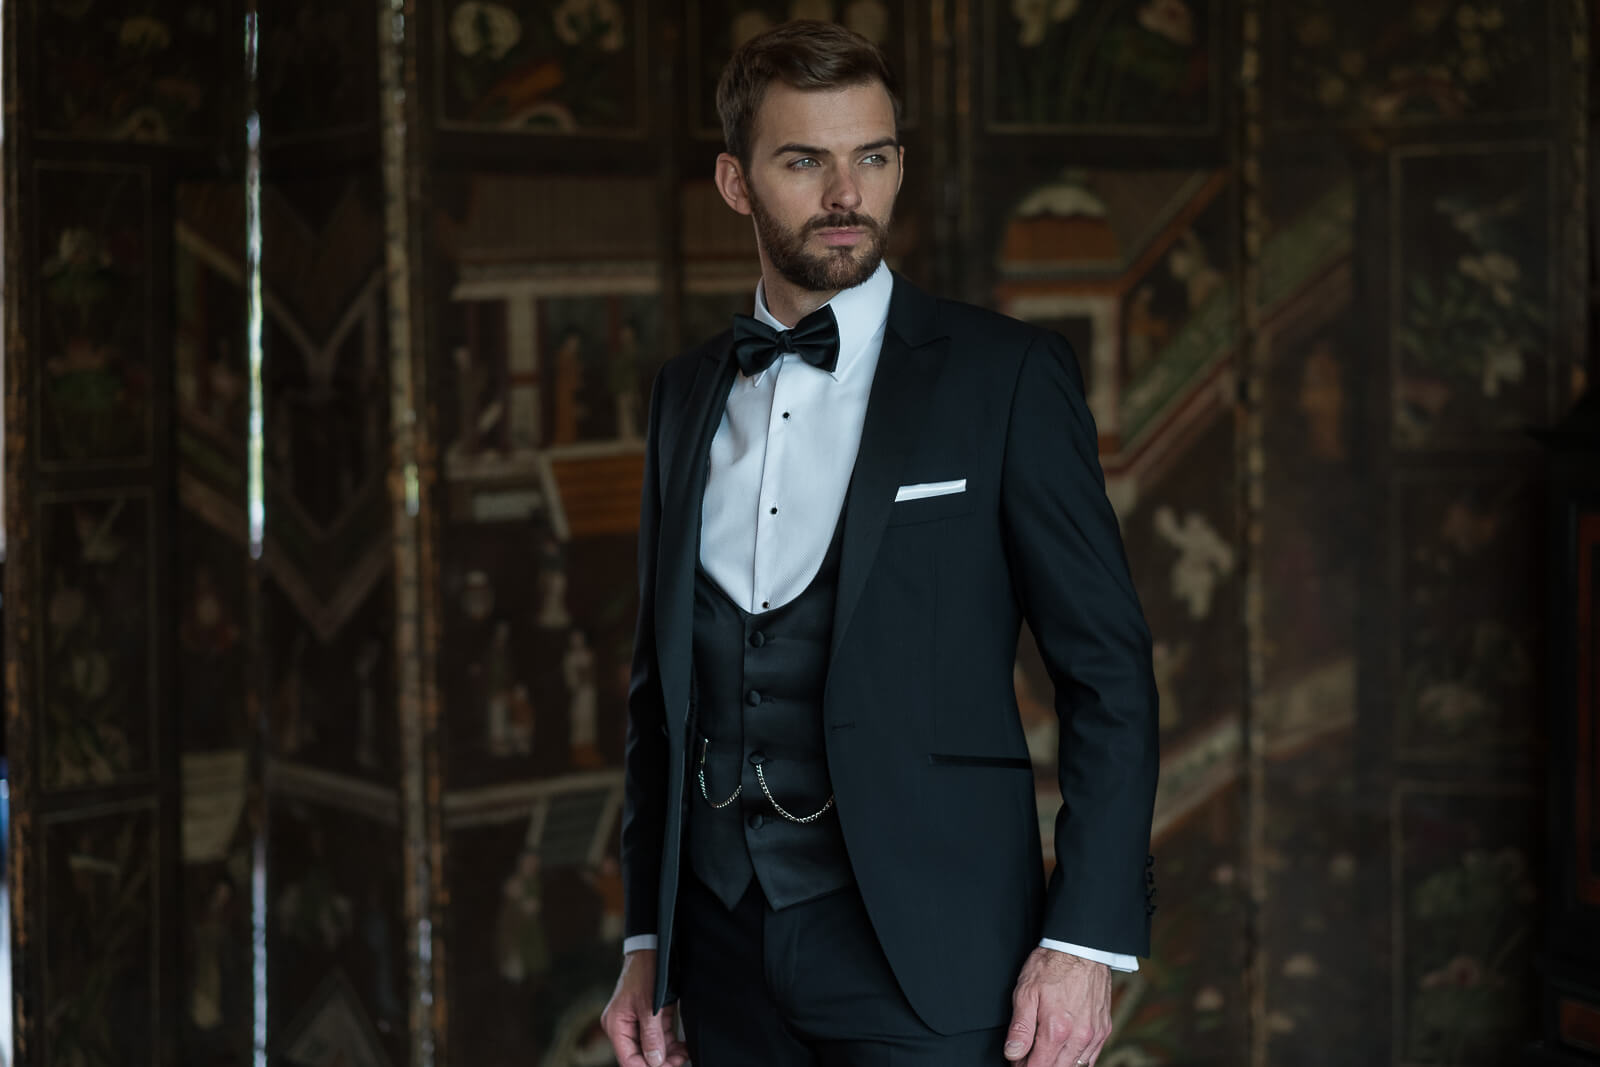 Model looking slightly off camera wearing a 3 piece black suit with a bow tie.